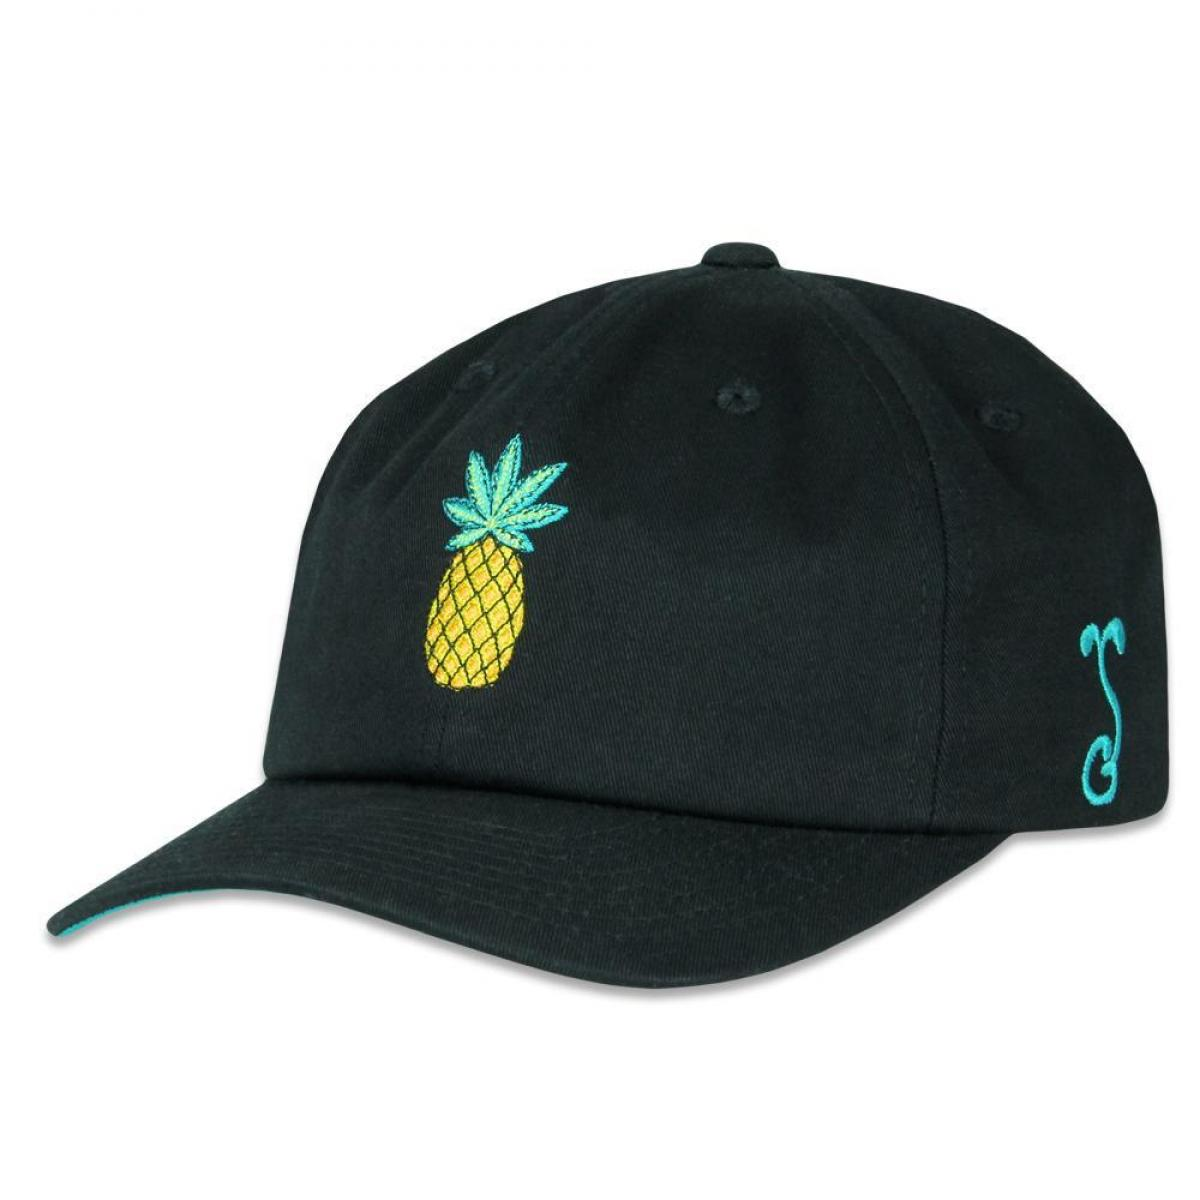 Black Ink Art Pineapple Dad Hat